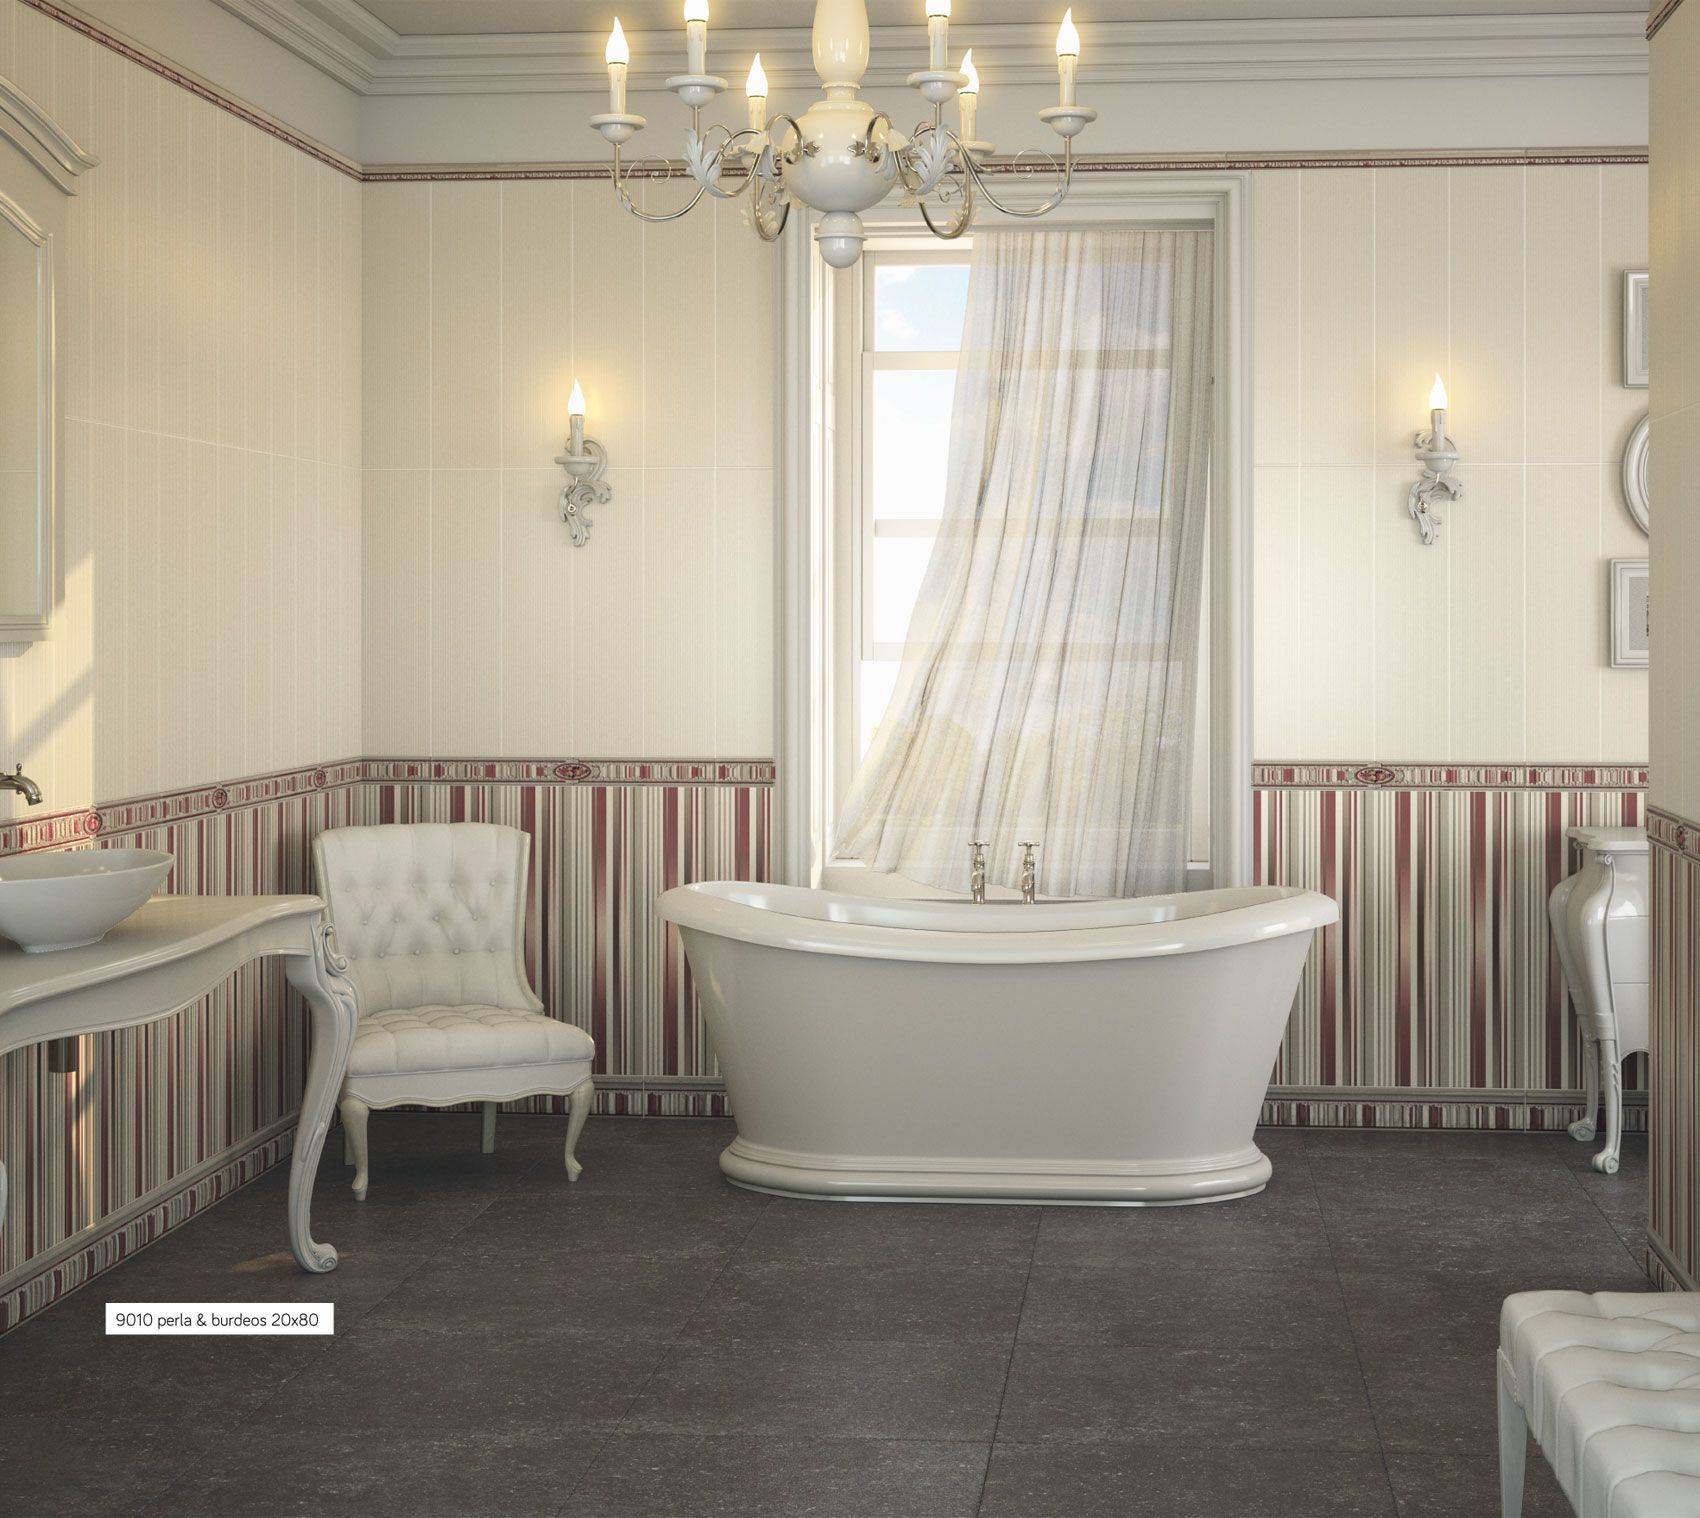 Clear tones and tiles with baroque decoration of the 9010 series clear tones and tiles with baroque decoration of the 9010 series are used to dailygadgetfo Image collections